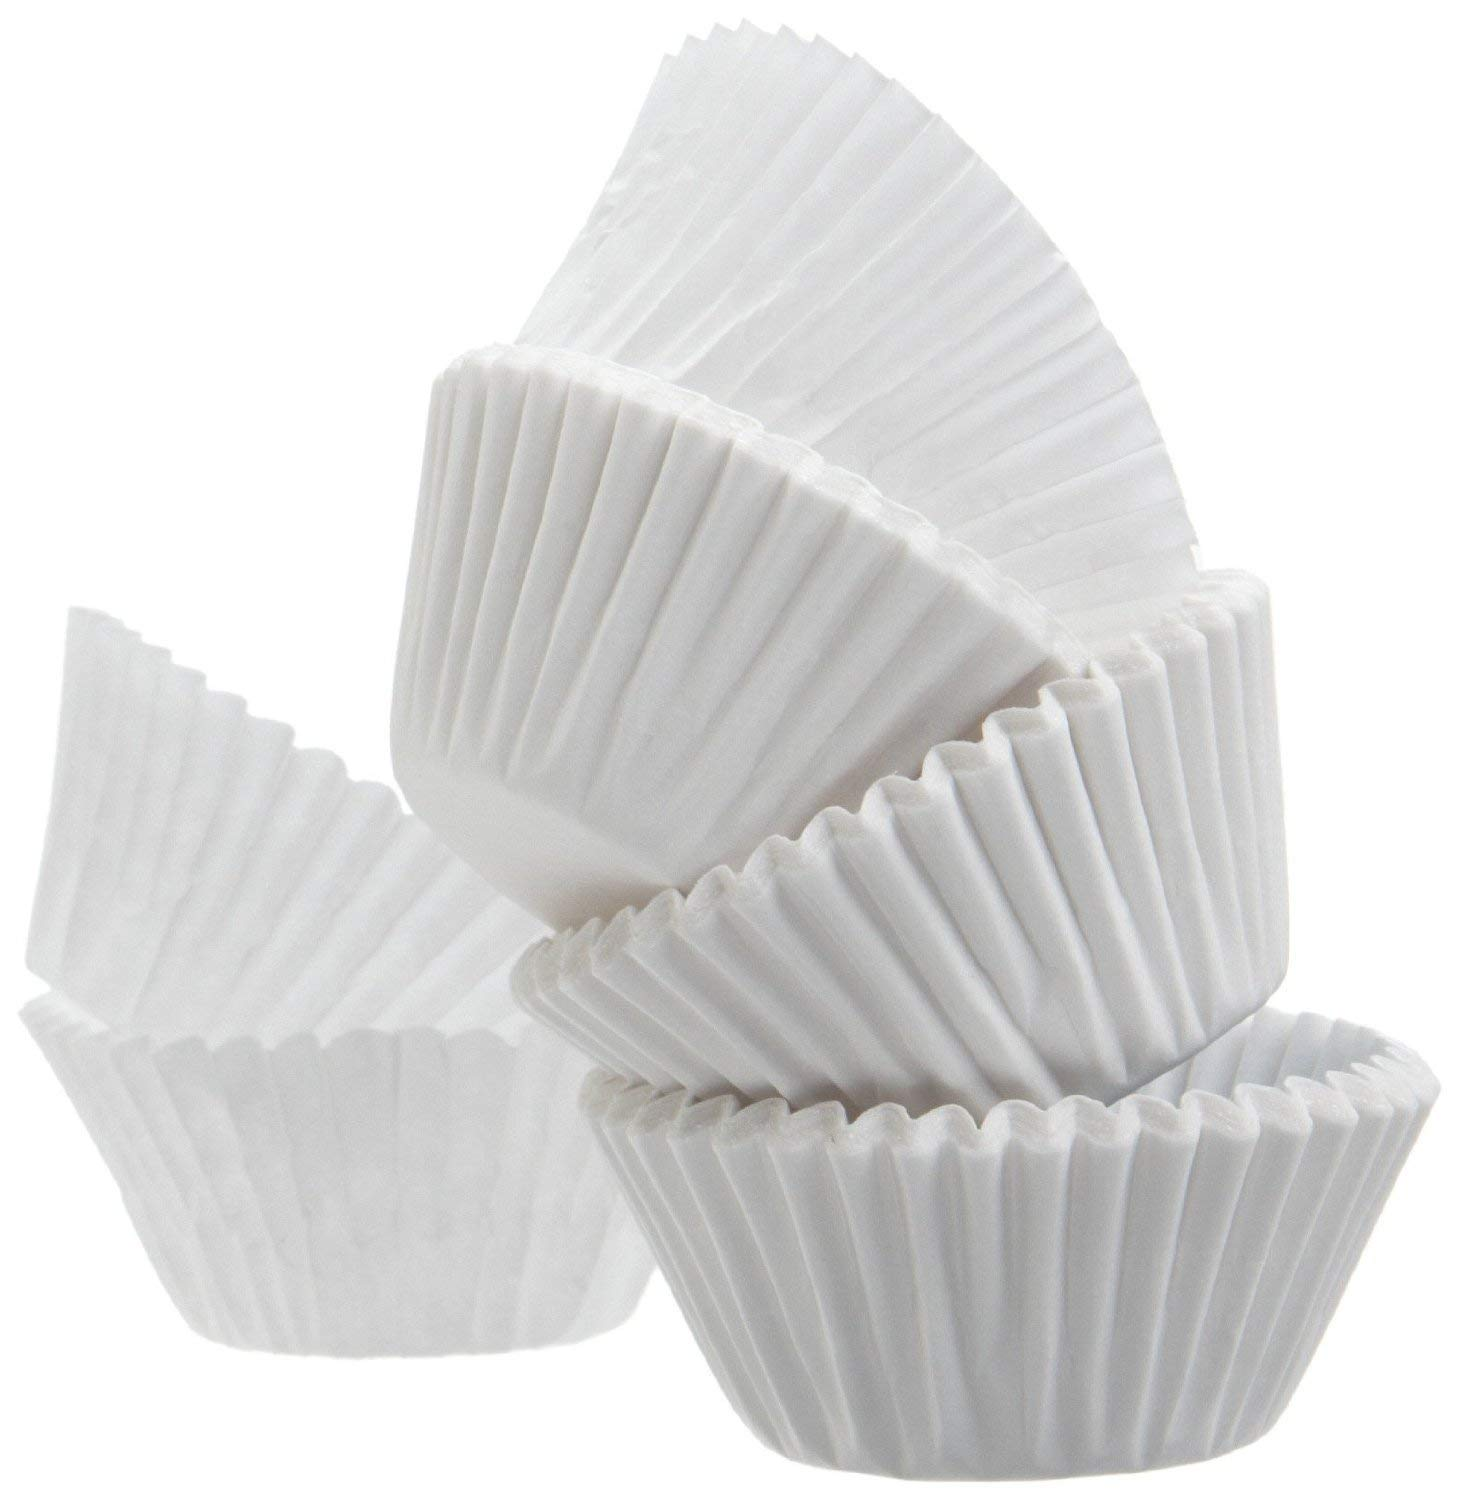 Standard size white cupcake paper